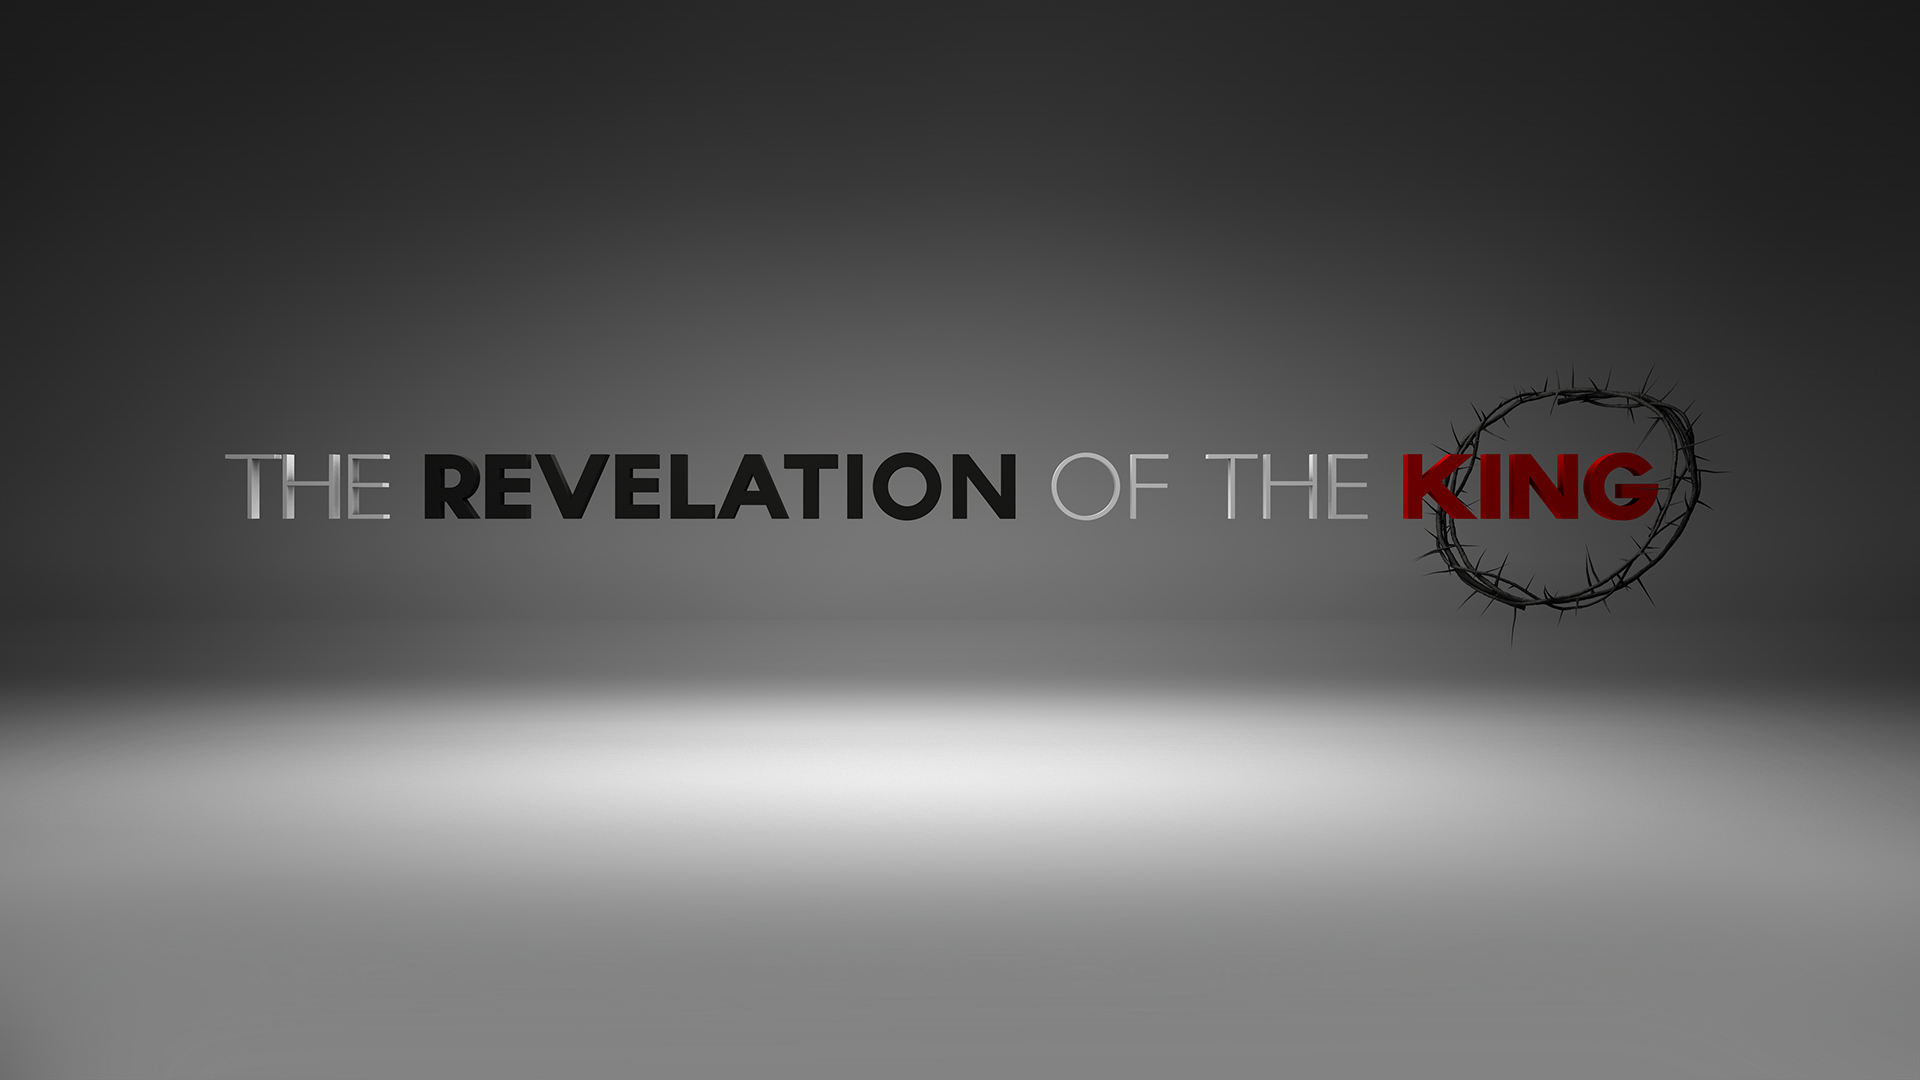 Revelation of the king 1080